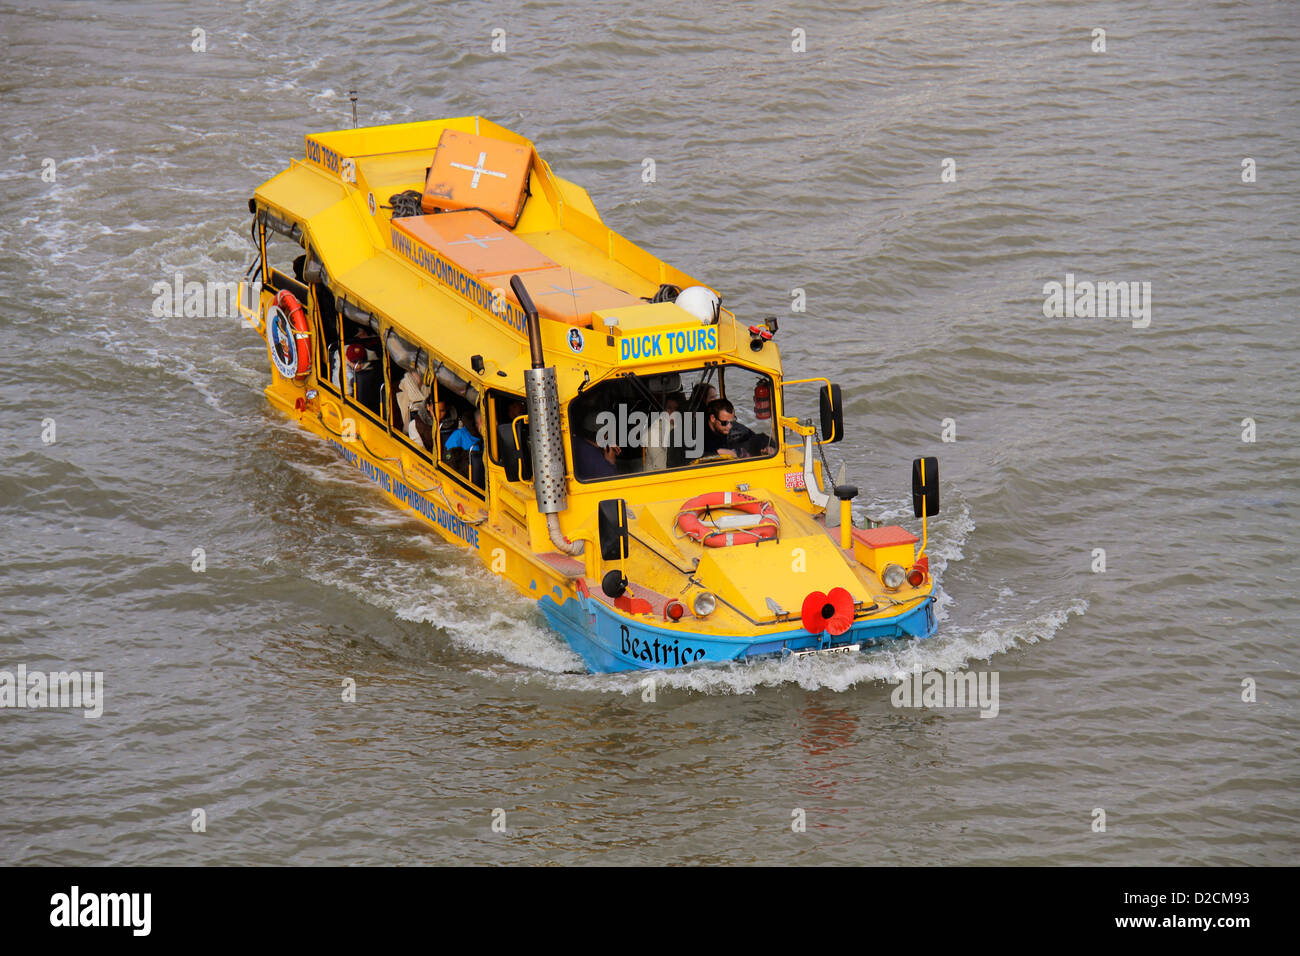 Amphibious vehicle in the river Thames as part of the Duck Tours of London, a tour on road and river of the sights - Stock Image